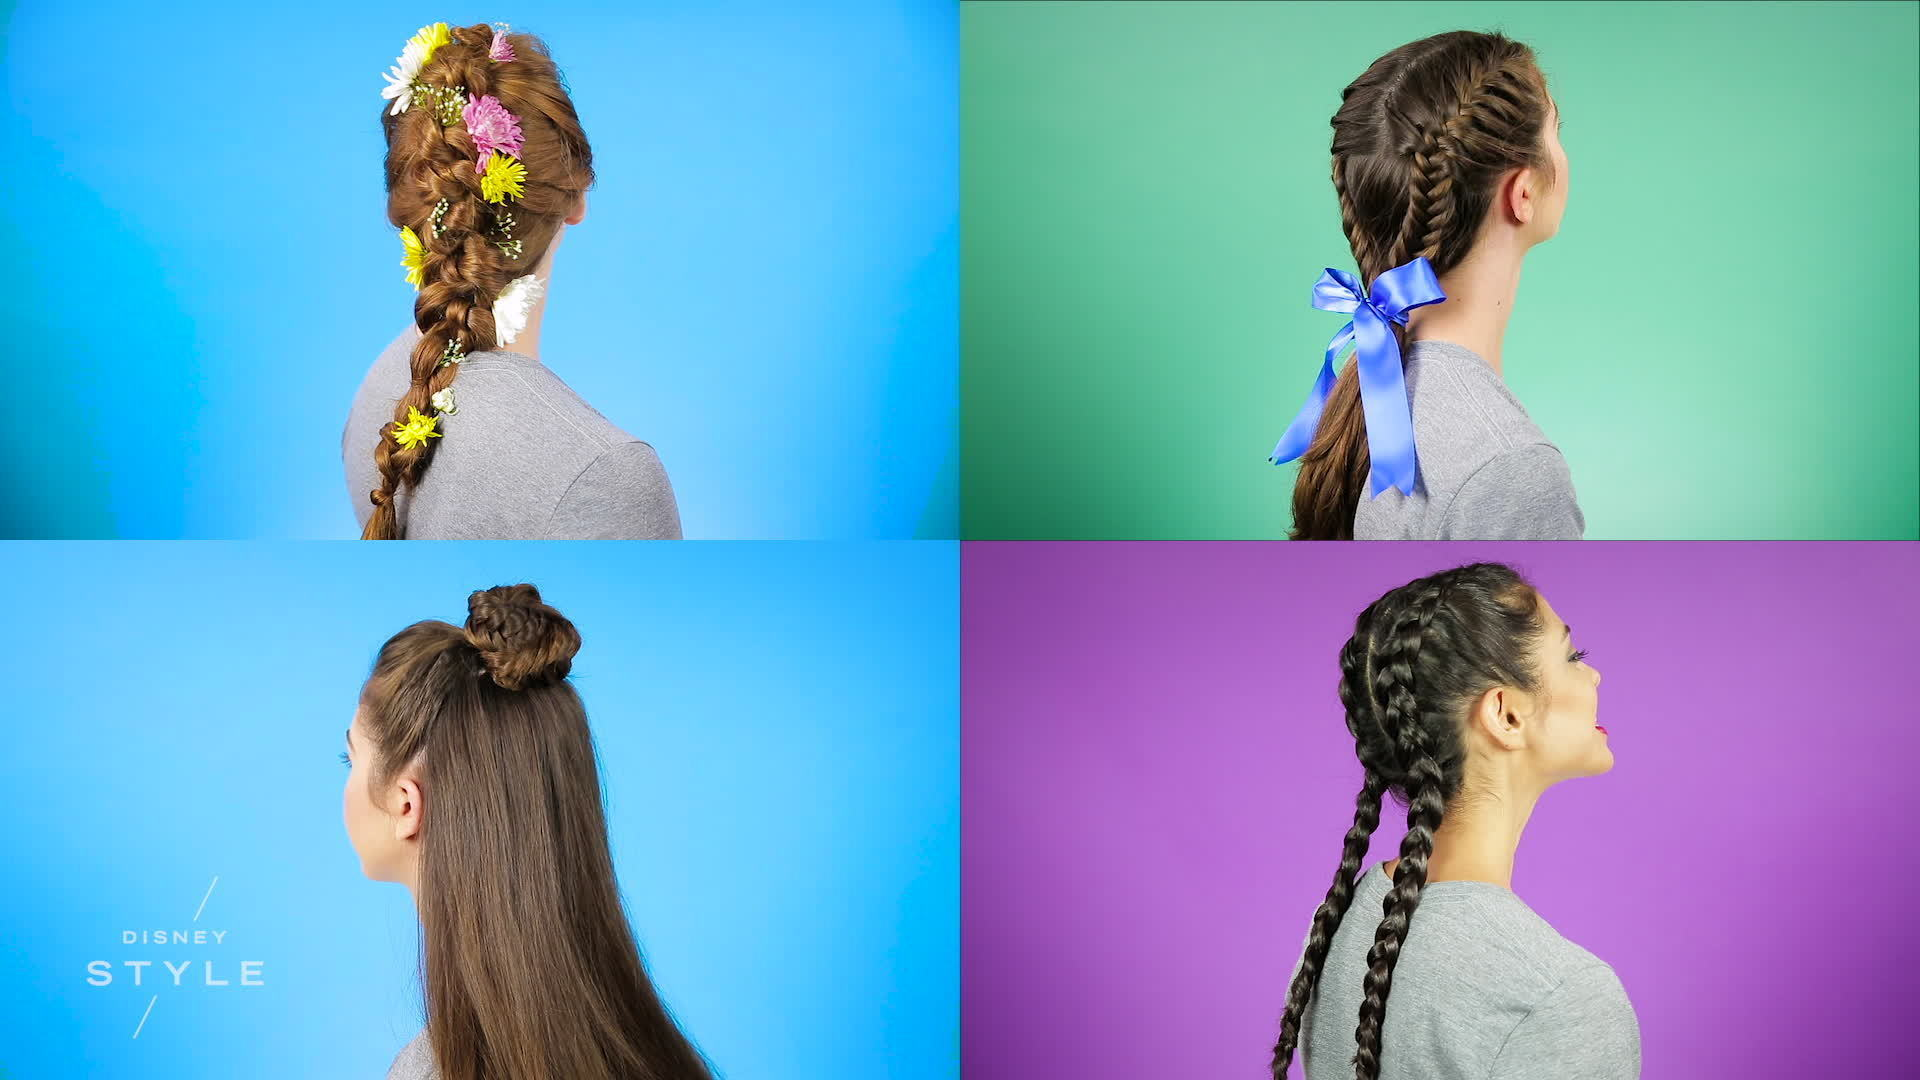 Disney-Inspired Braid Tutorial #2 | Disney Style